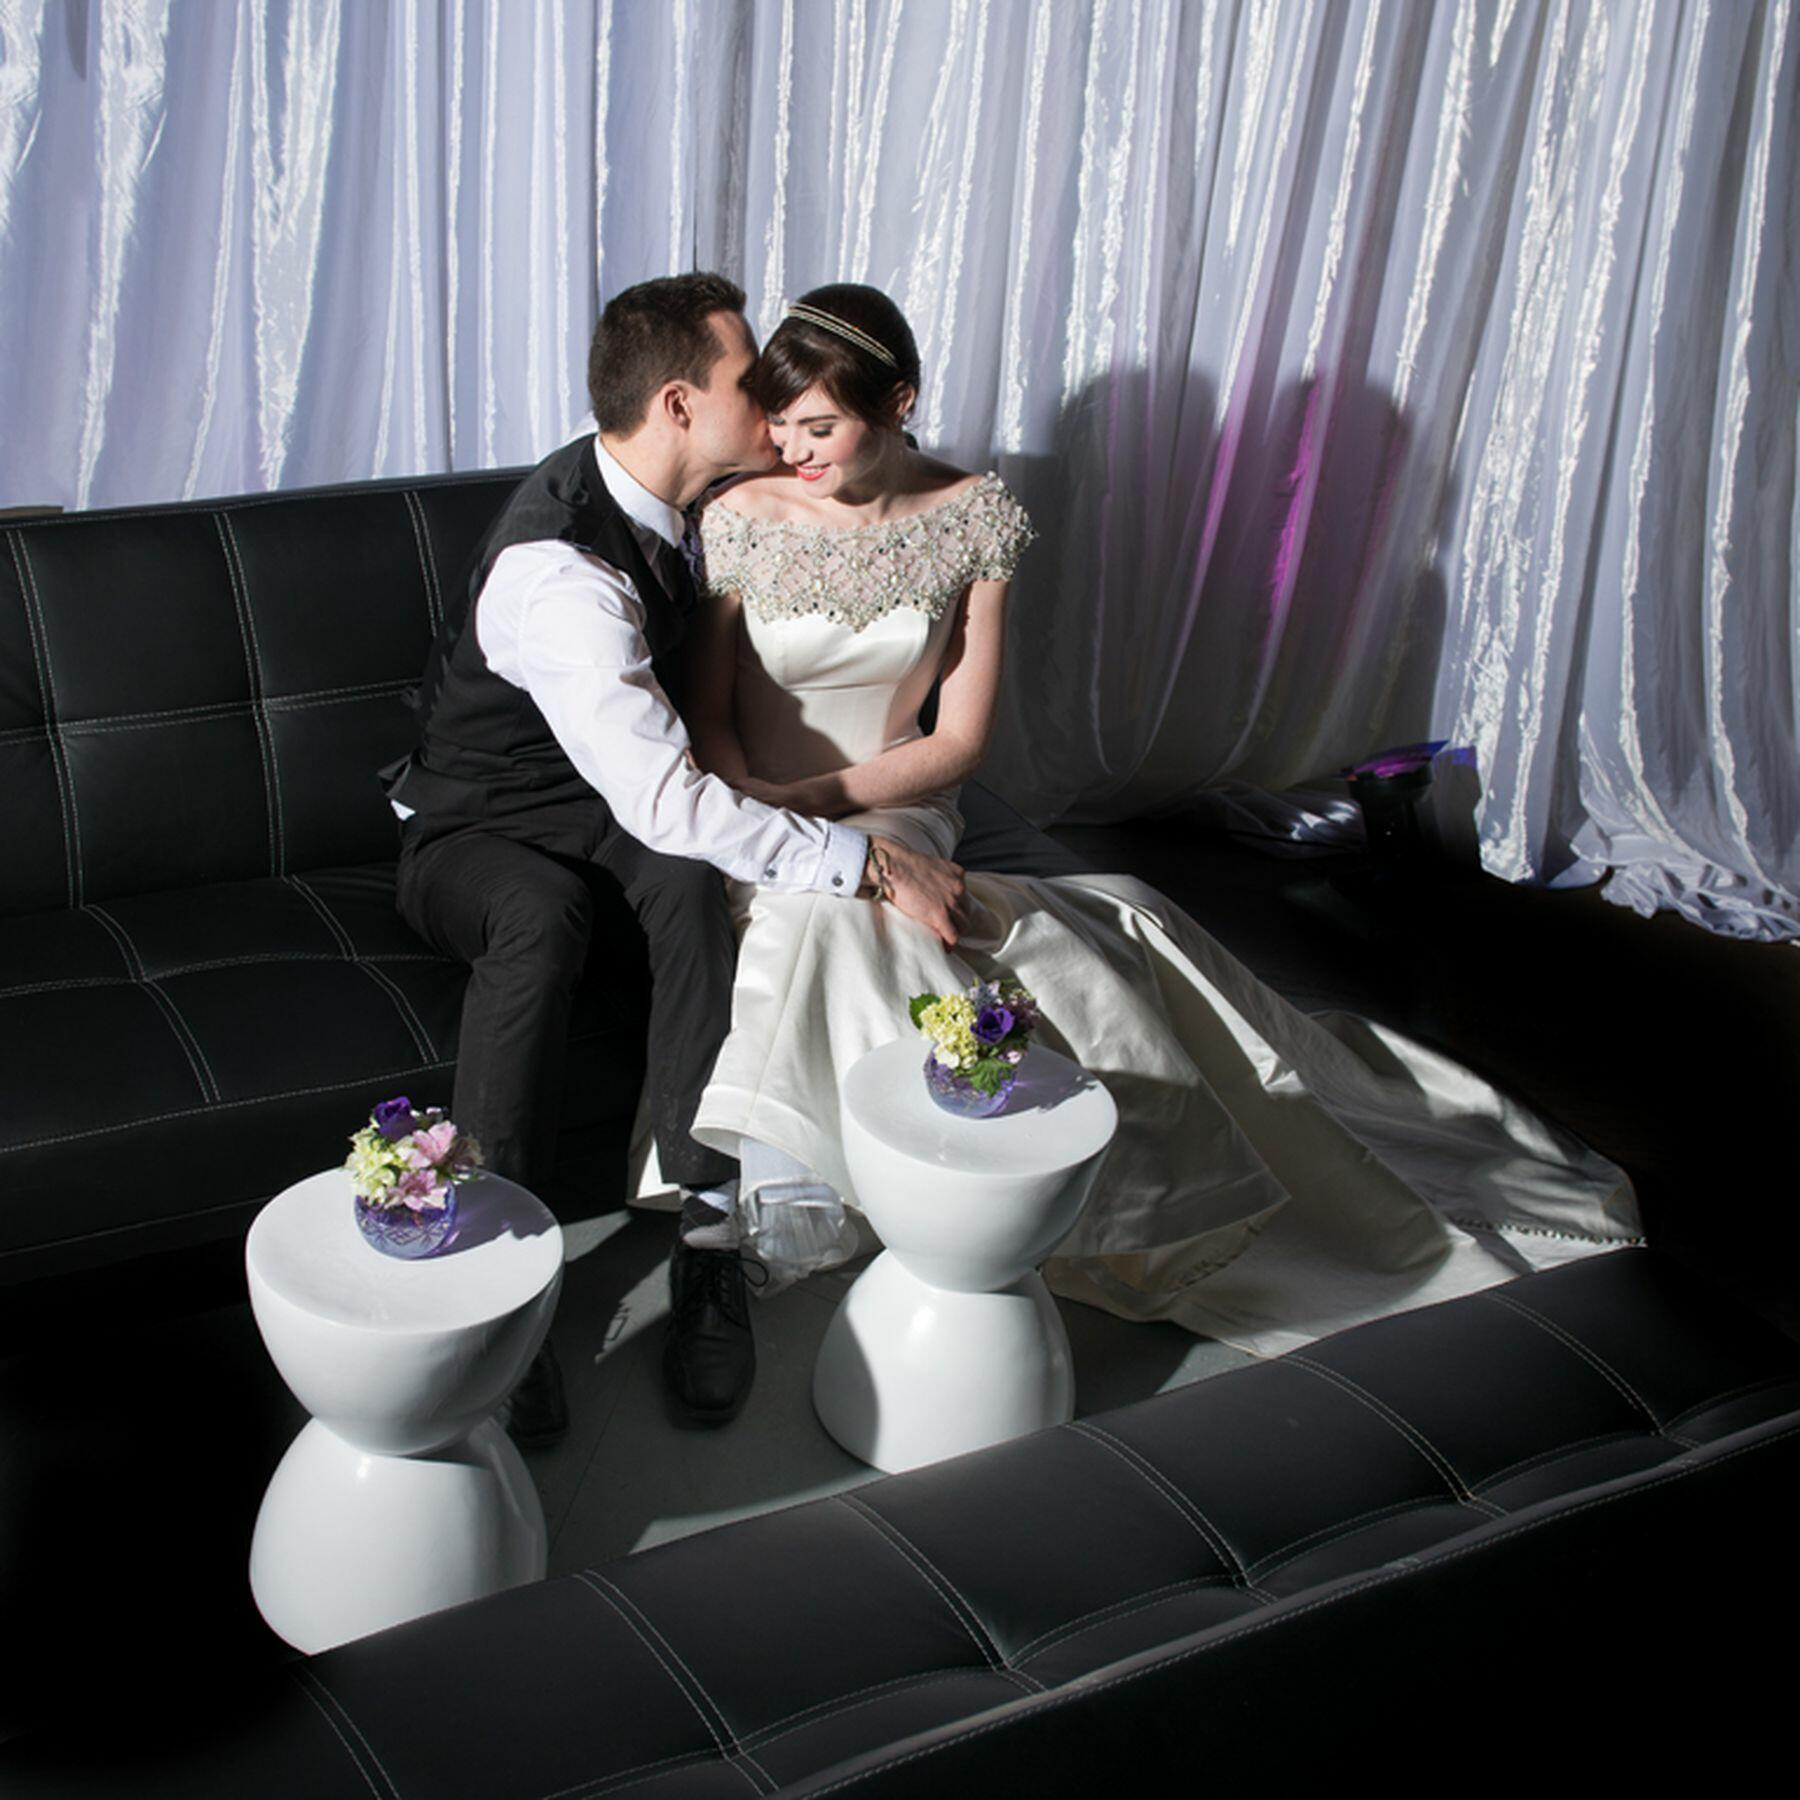 Bride and groom sitting on couch.